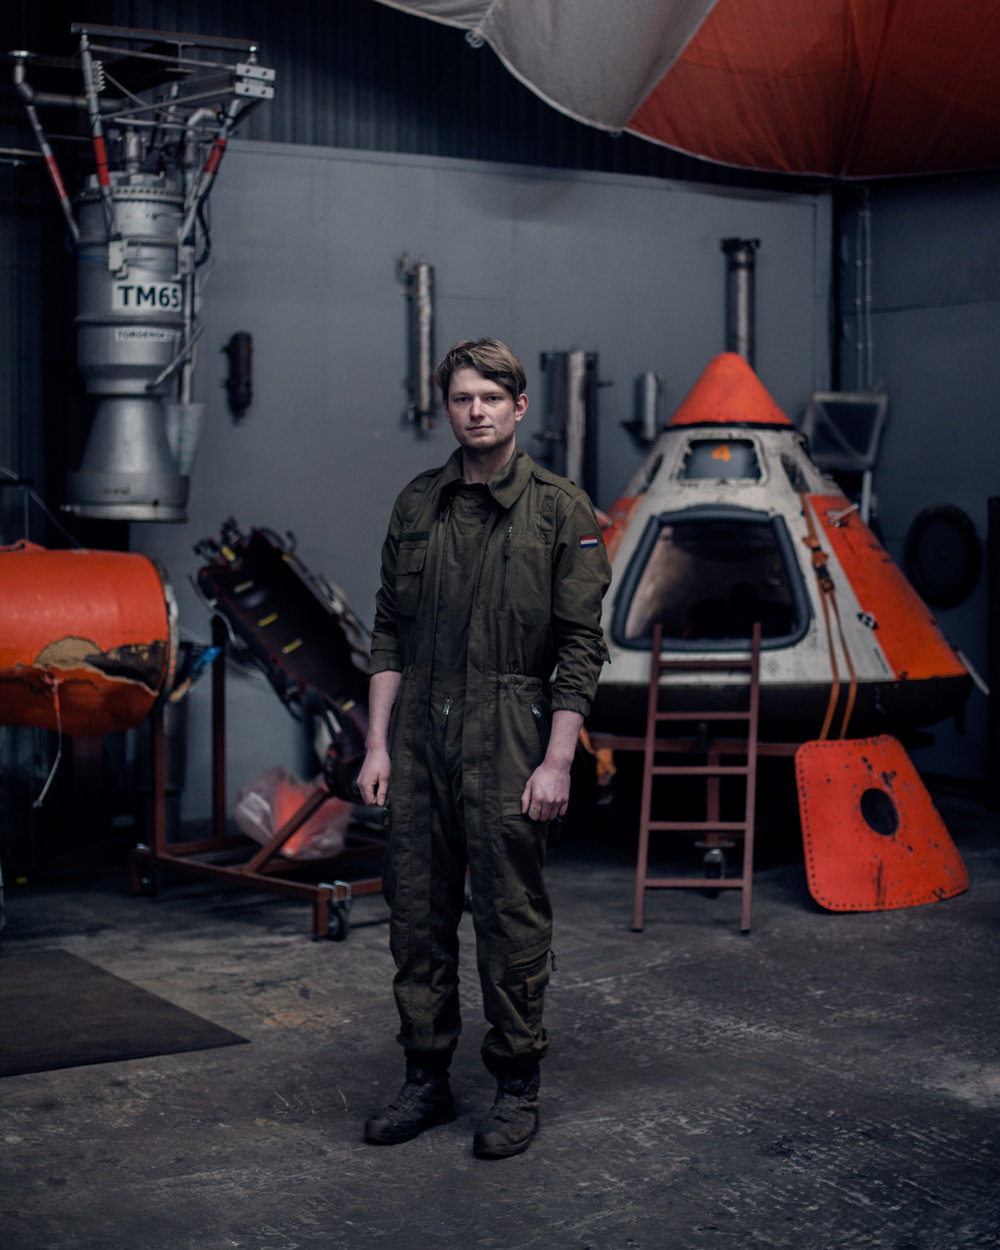 Jop Nijenhuis, rocket engineer at Copenhagen Suborbitals. Refshaleøen, Copenhagen, 2018.  Project Statement